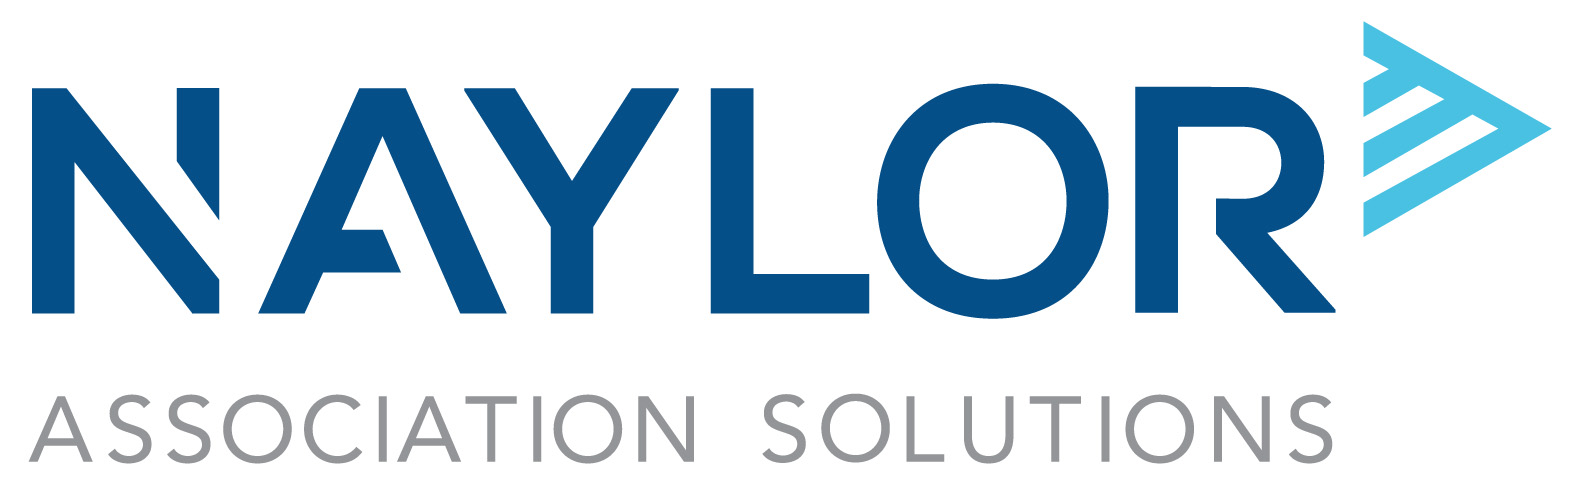 Naylor-AS-Logo-RGB